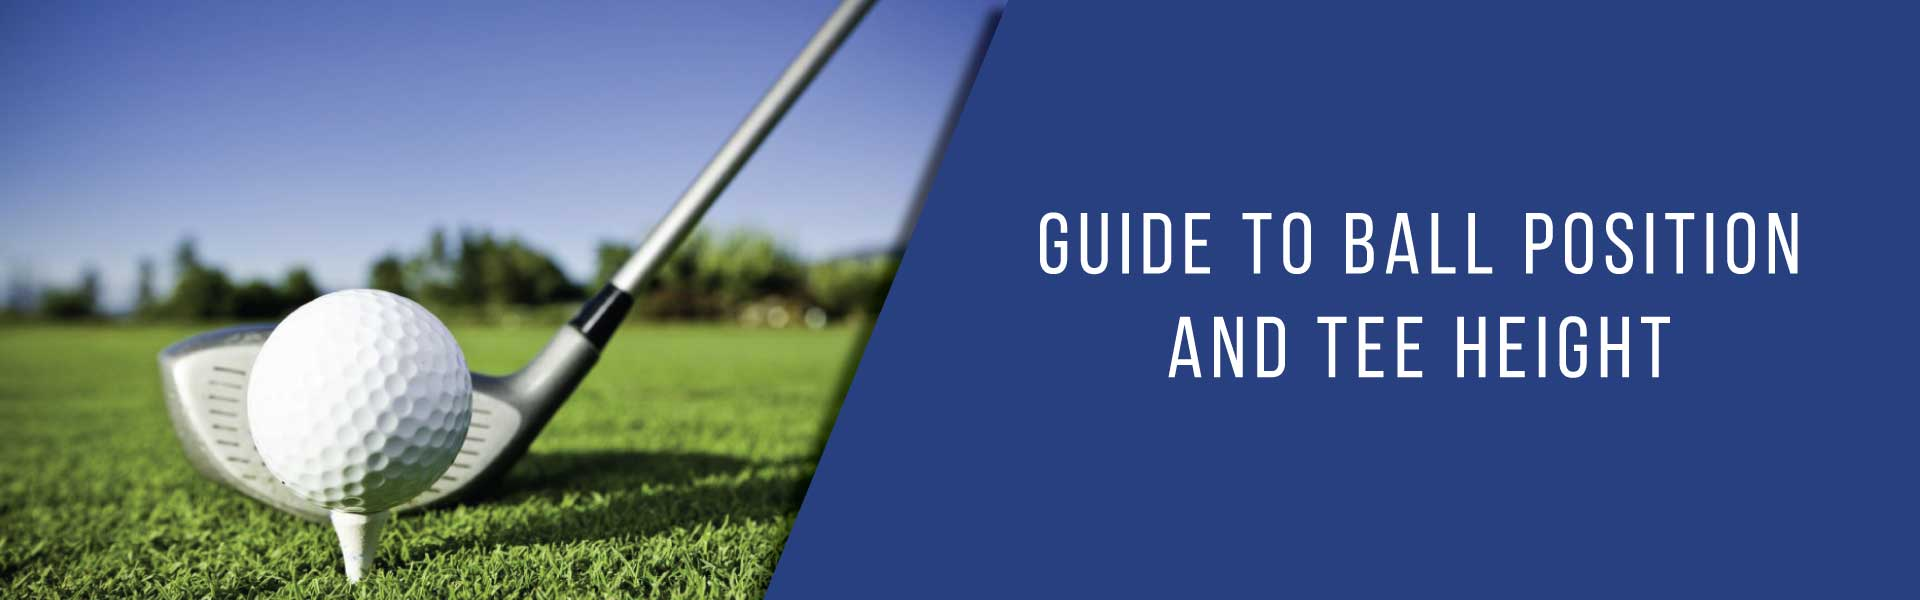 TIPS: Guide to ball position and tee height